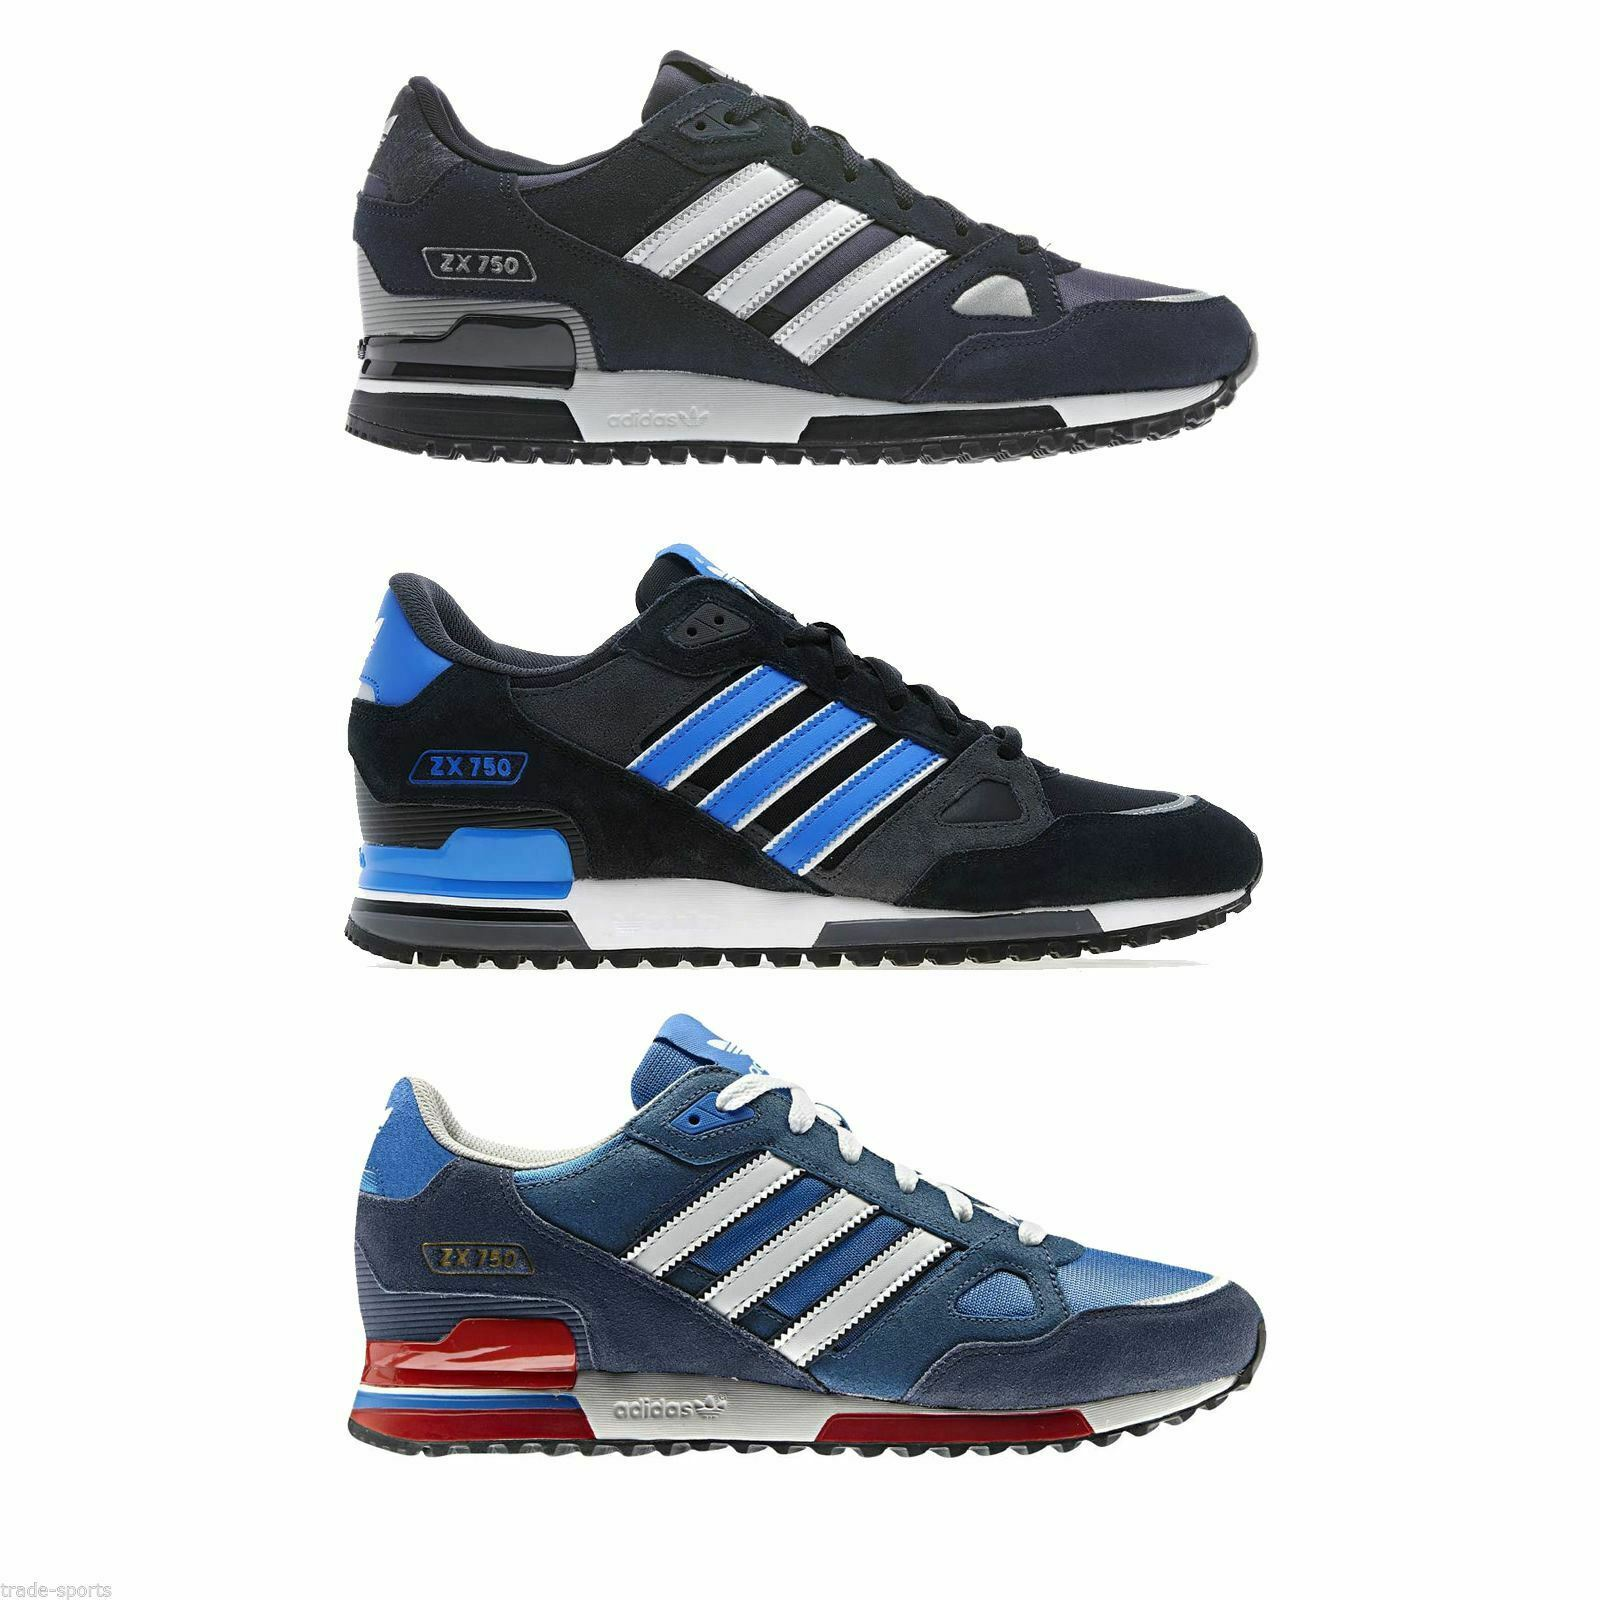 cafetería Baya madera  ADIDAS ORIGINALS ZX 750 MENS RUNNING TRAINERS BLUE BLACK NAVY SNEAKERS  SHOES NEW for sale online